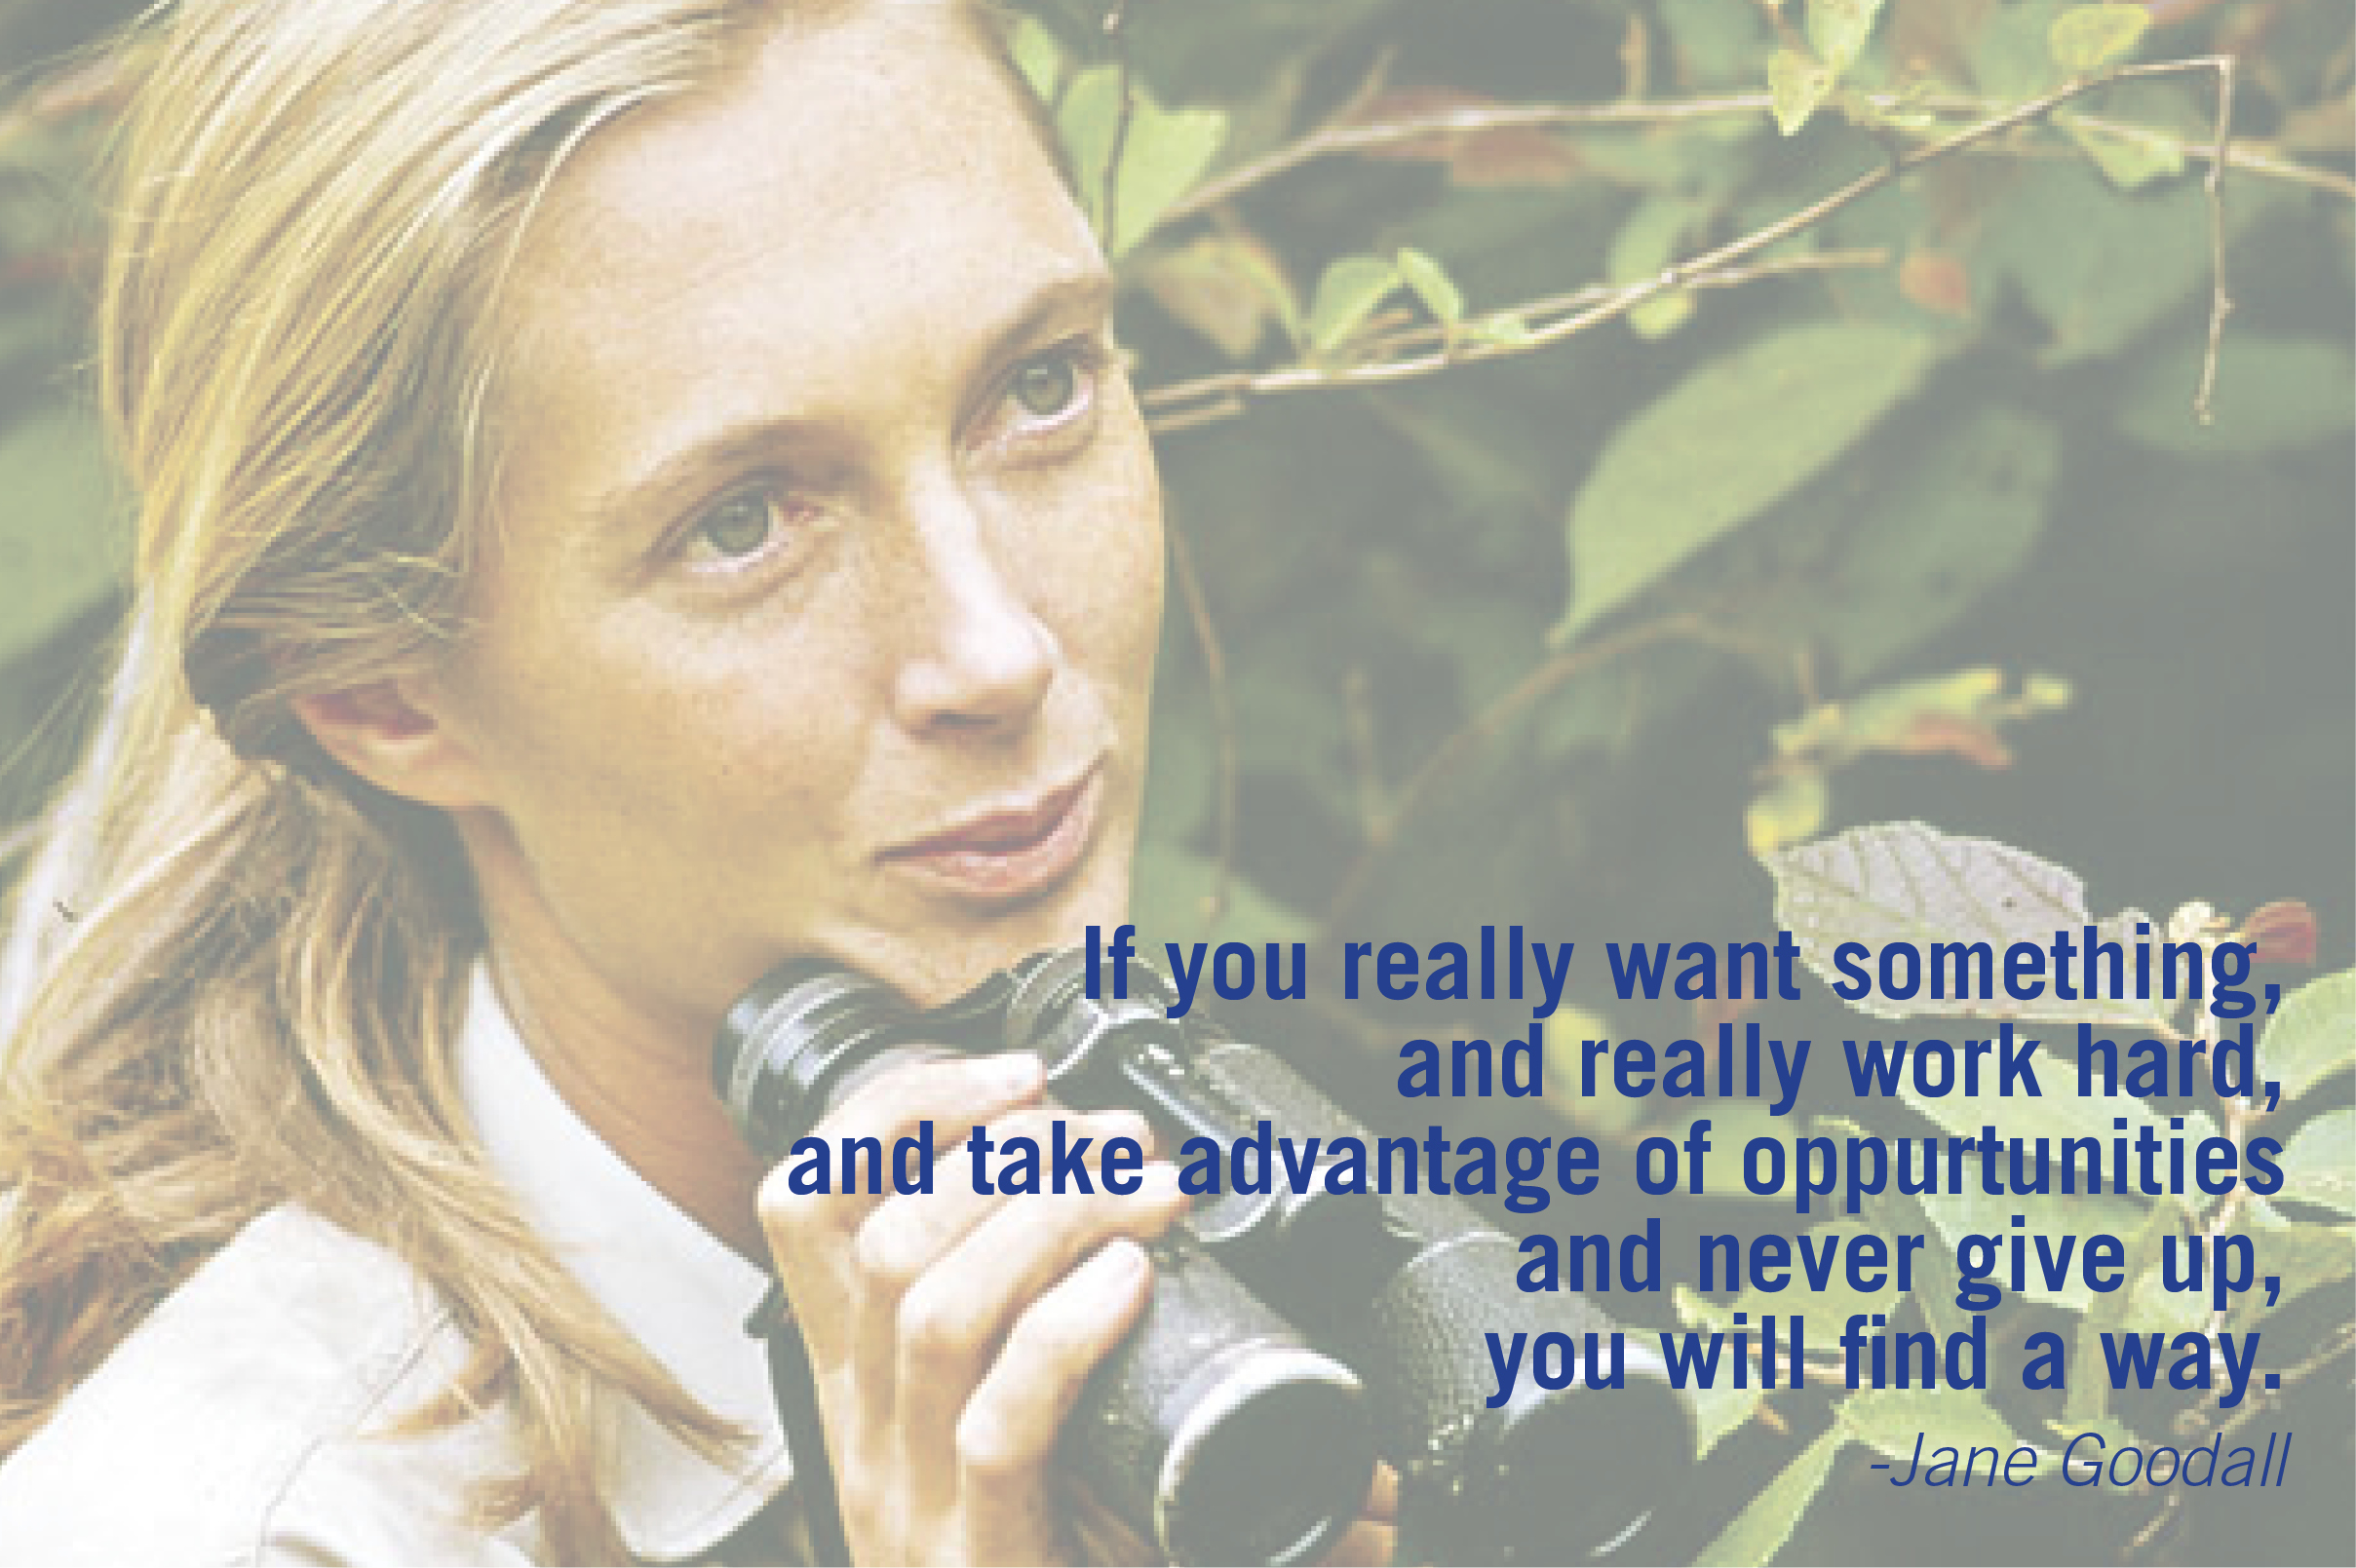 Jane Goodall Message To Humanity And Monsanto